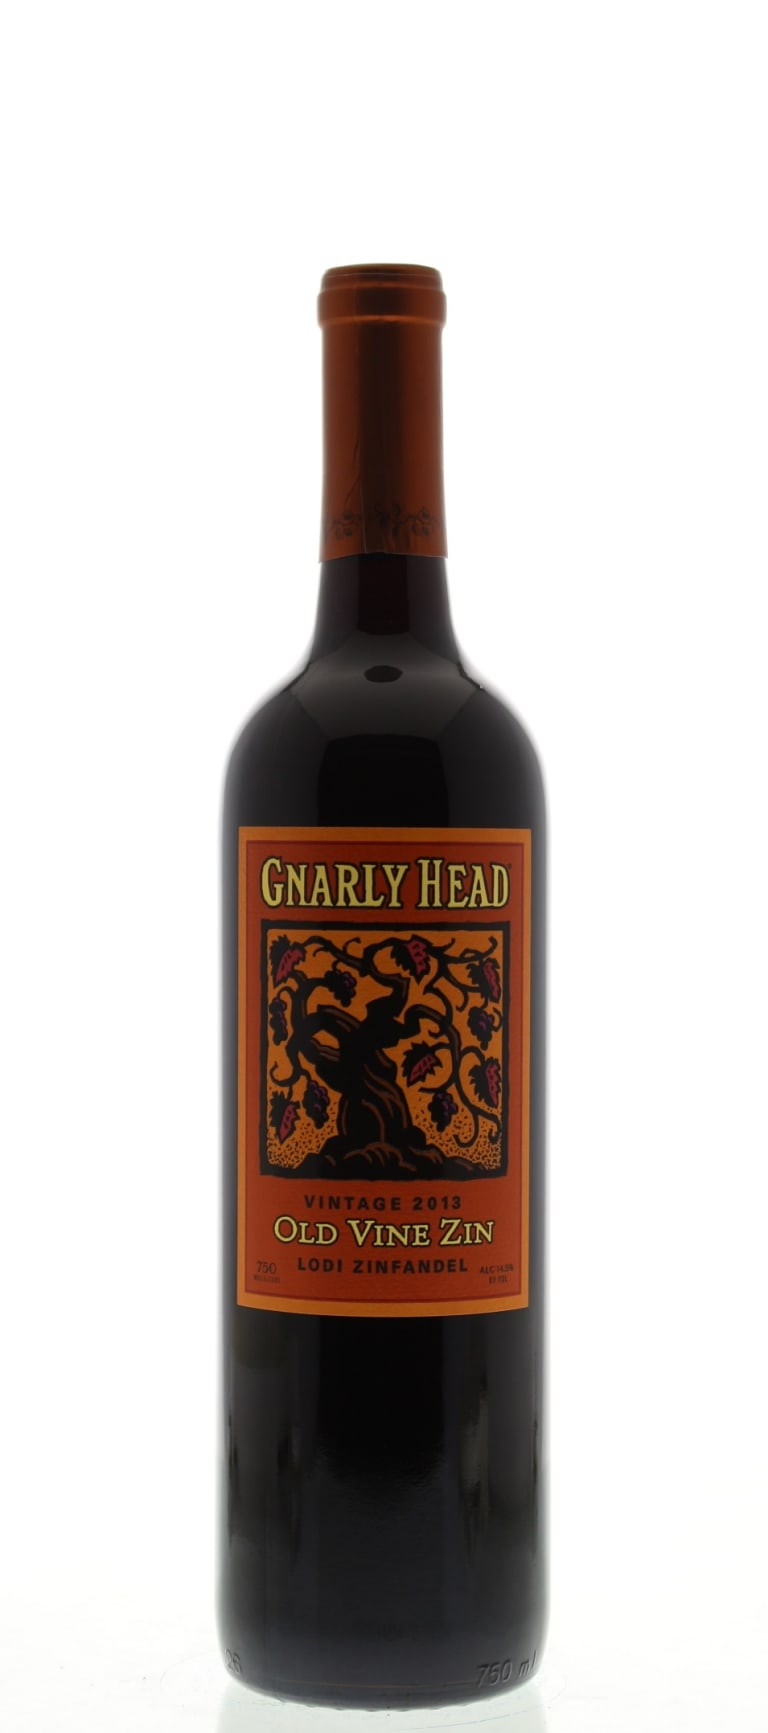 Gnarly Head 2013 Lodi Old Vine Zinfandel - Grapes & Hops Deli